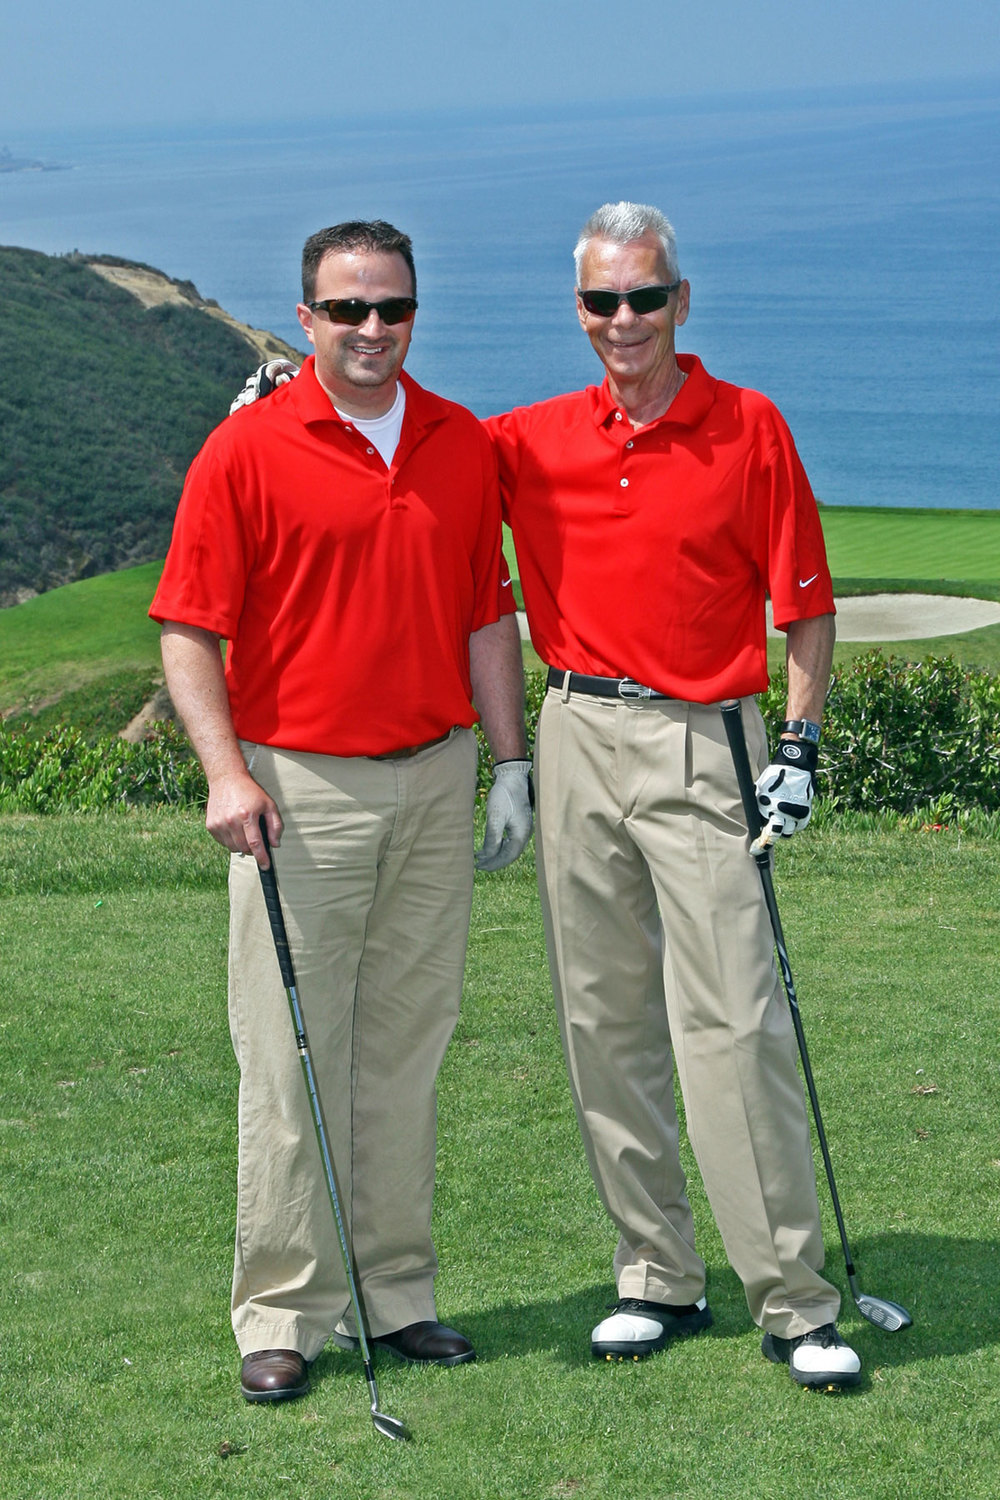 V-Father-and-Son-2009-CR-Torrey-Pines-070-edit.jpg